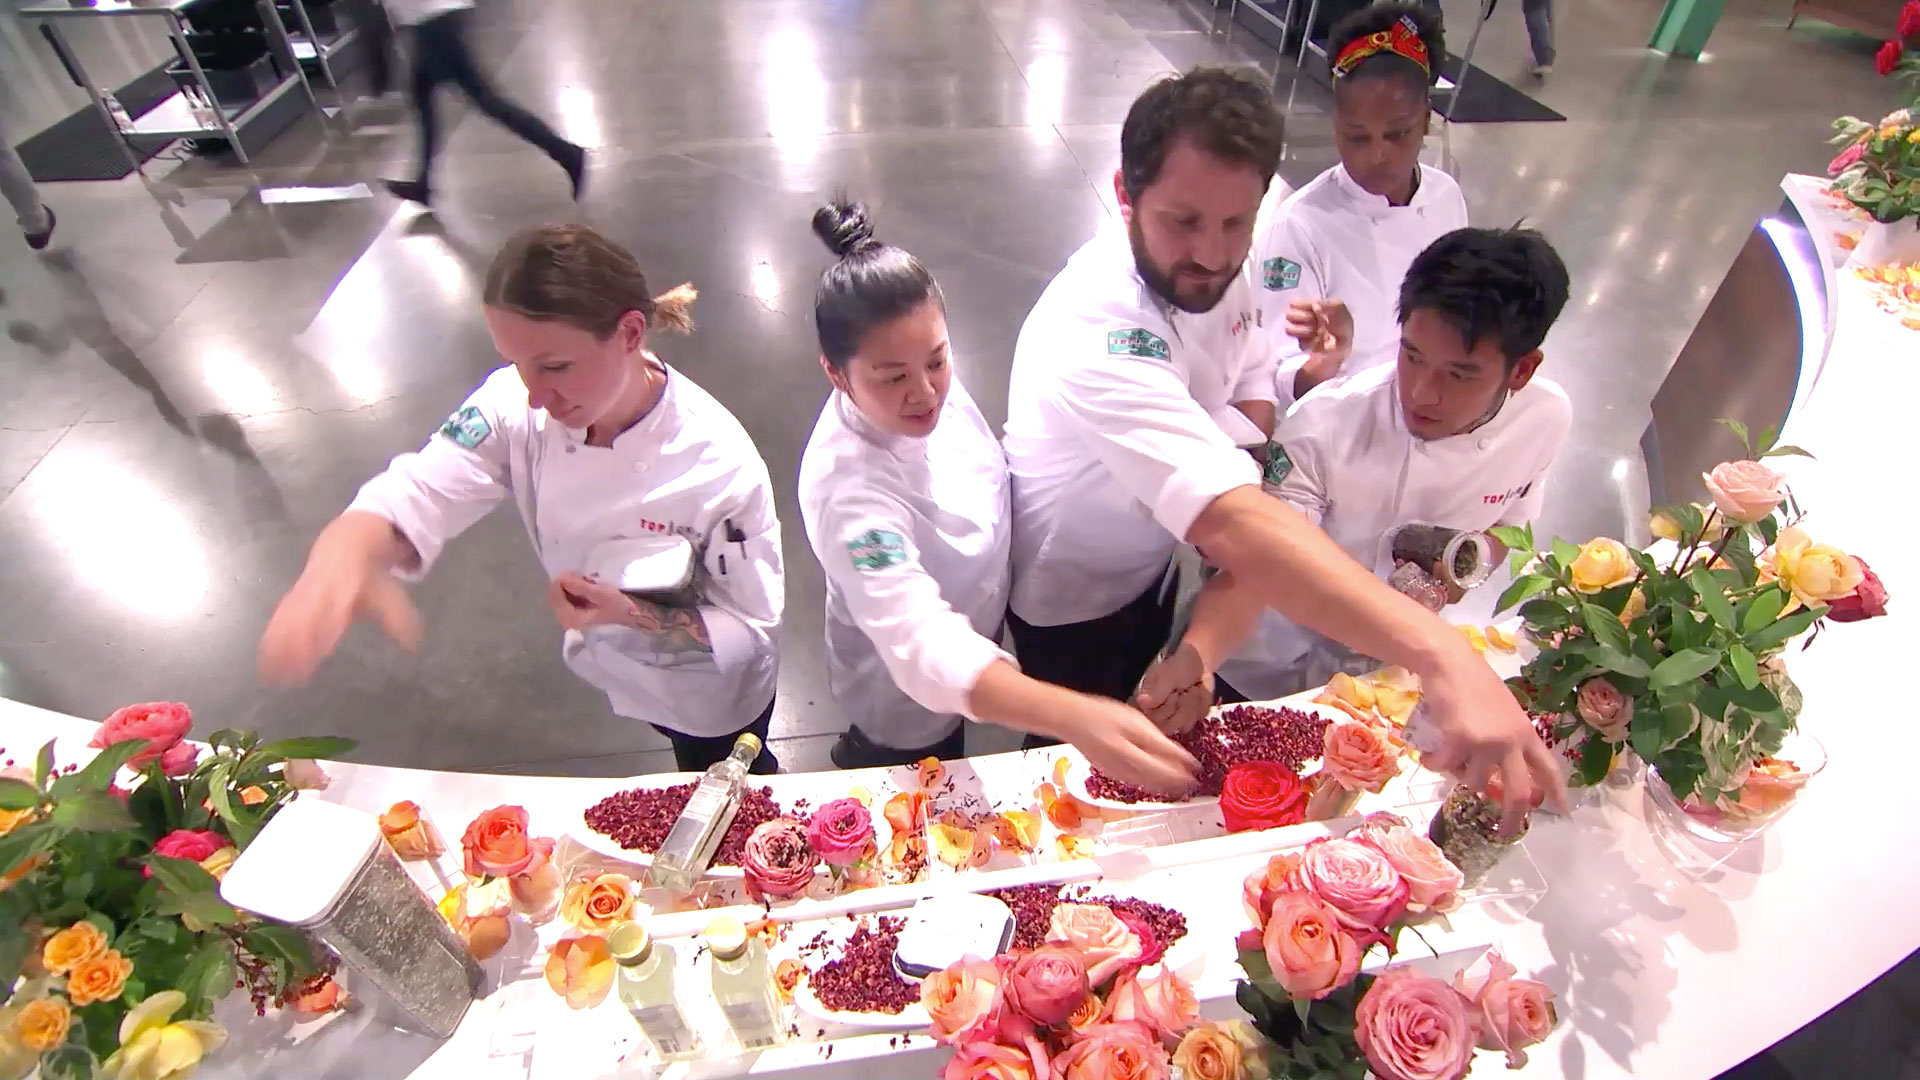 The Chefs Are Tasked With Creating a Dish Featuring Rose Flavors